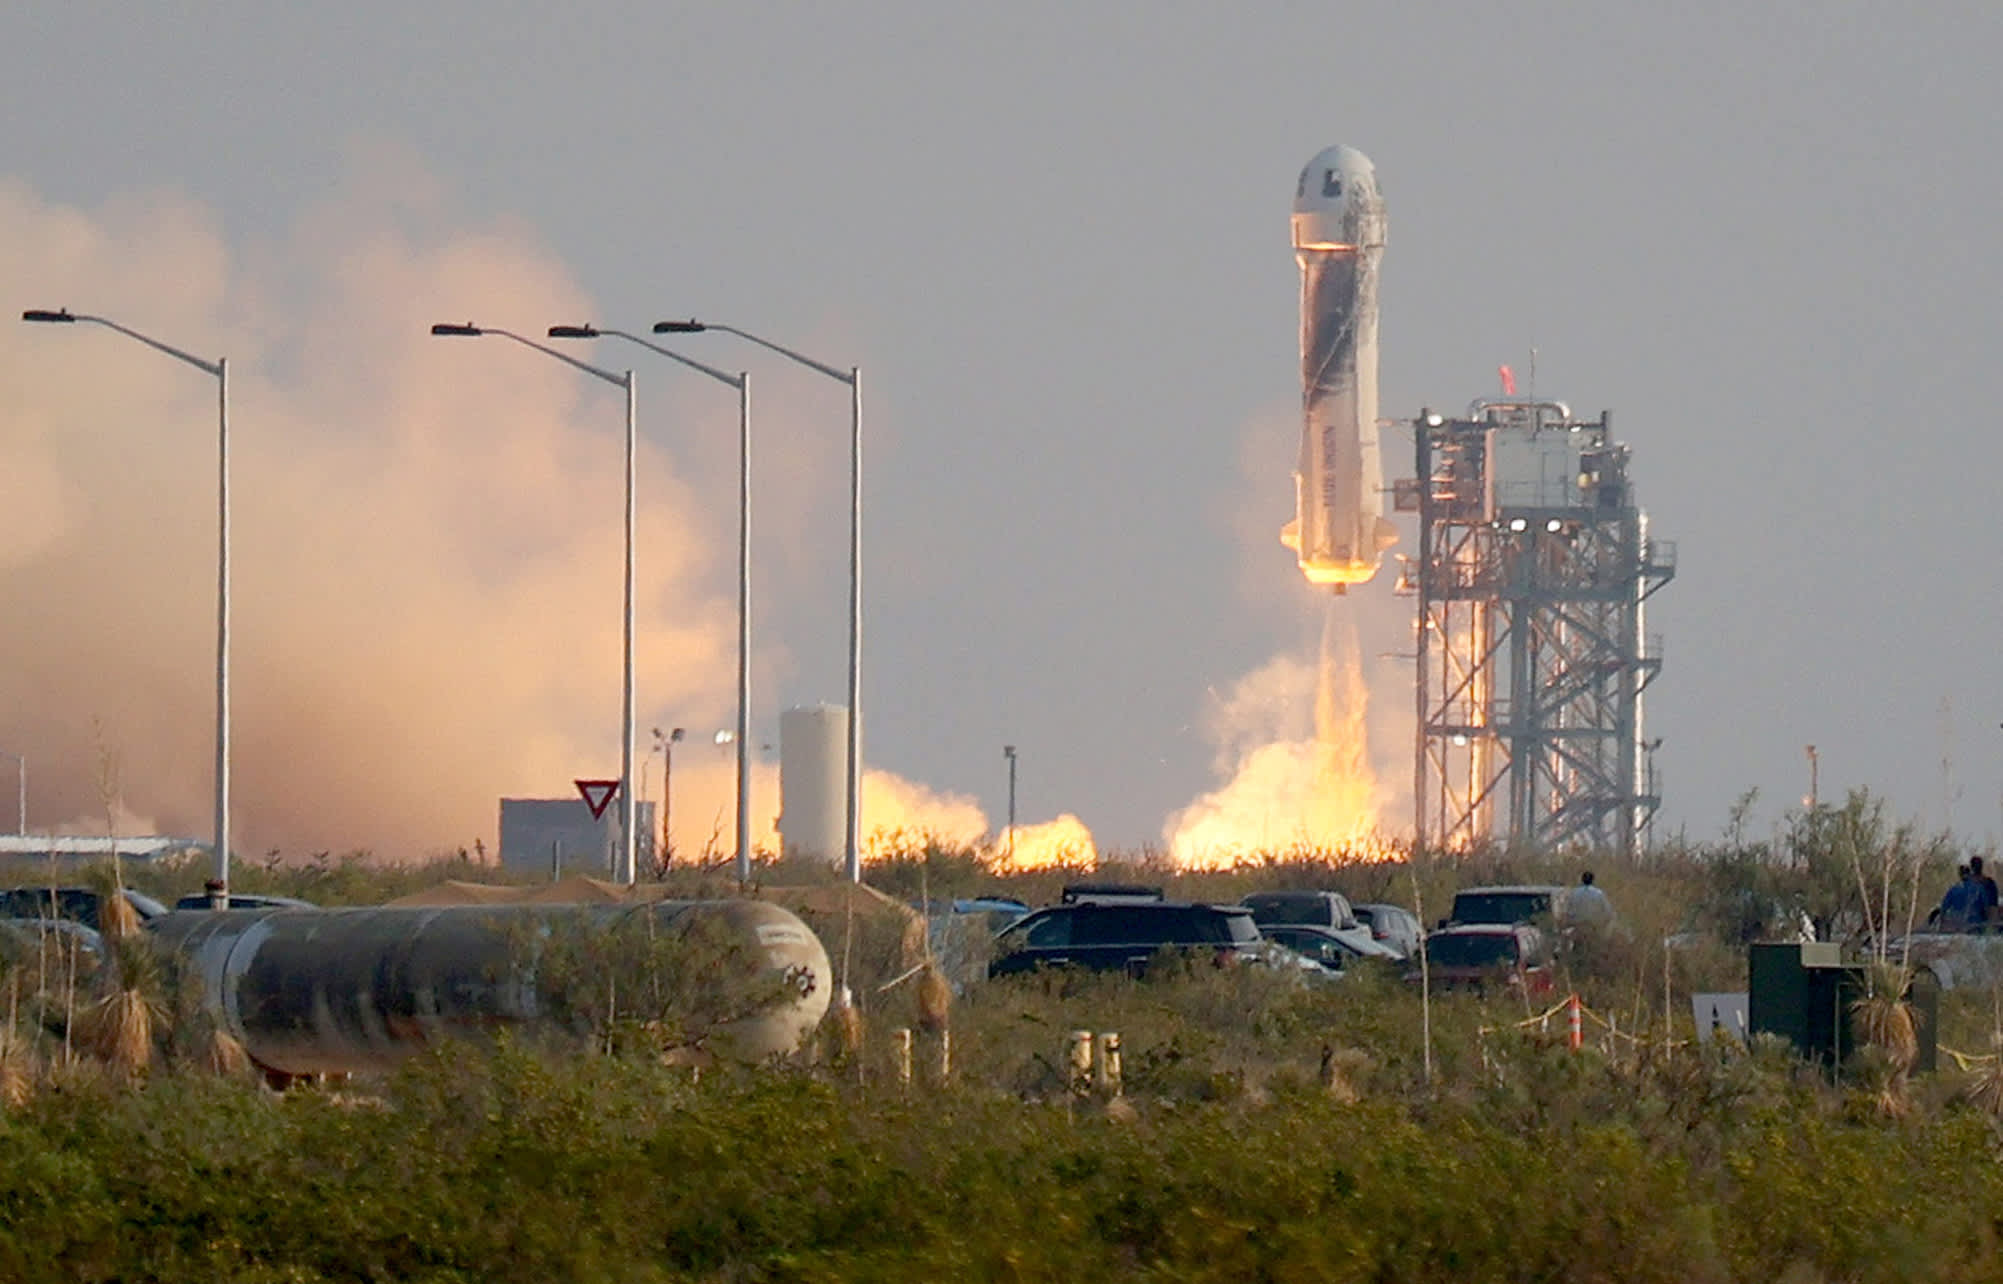 His Blue Origin company launched him into spaceflight history on Tuesday. Its first crewed New Shepard rocket blasted off from the Texas desert for th